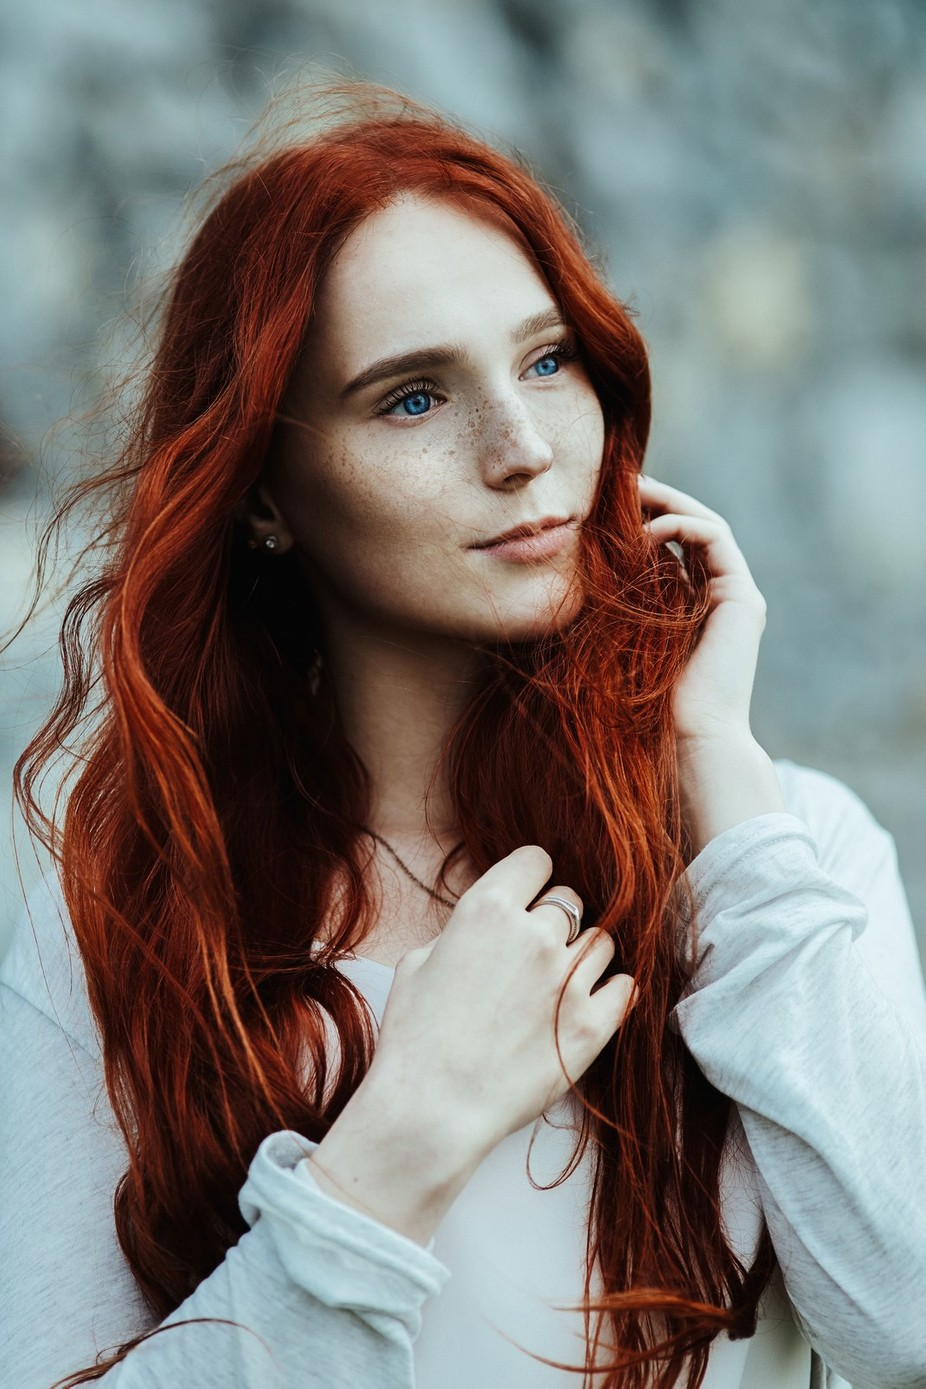 Irish sensuality in fiery hair and a soul full of freedom by TengyArts - Red Hair Photo Contest